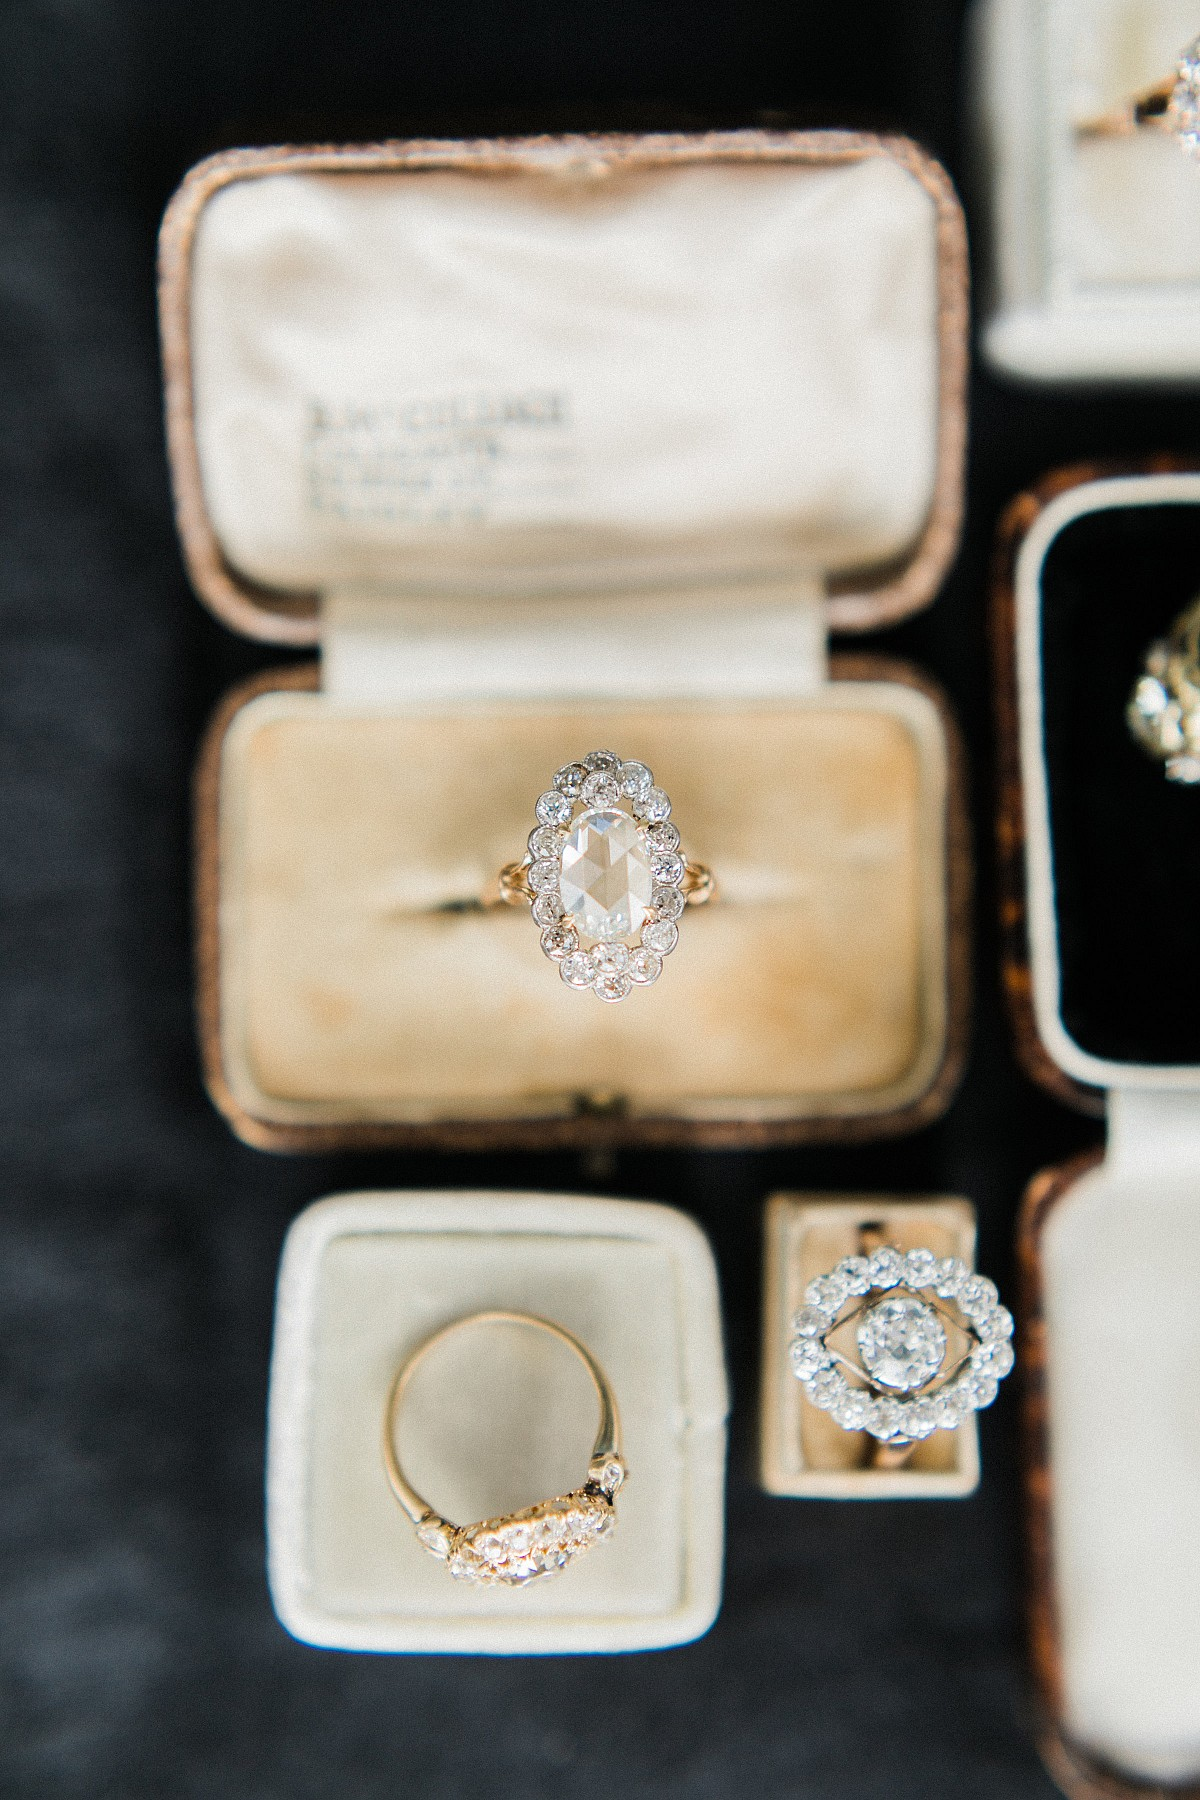 The Most Incredible Heirloom Engagement Rings: Victor Barbone